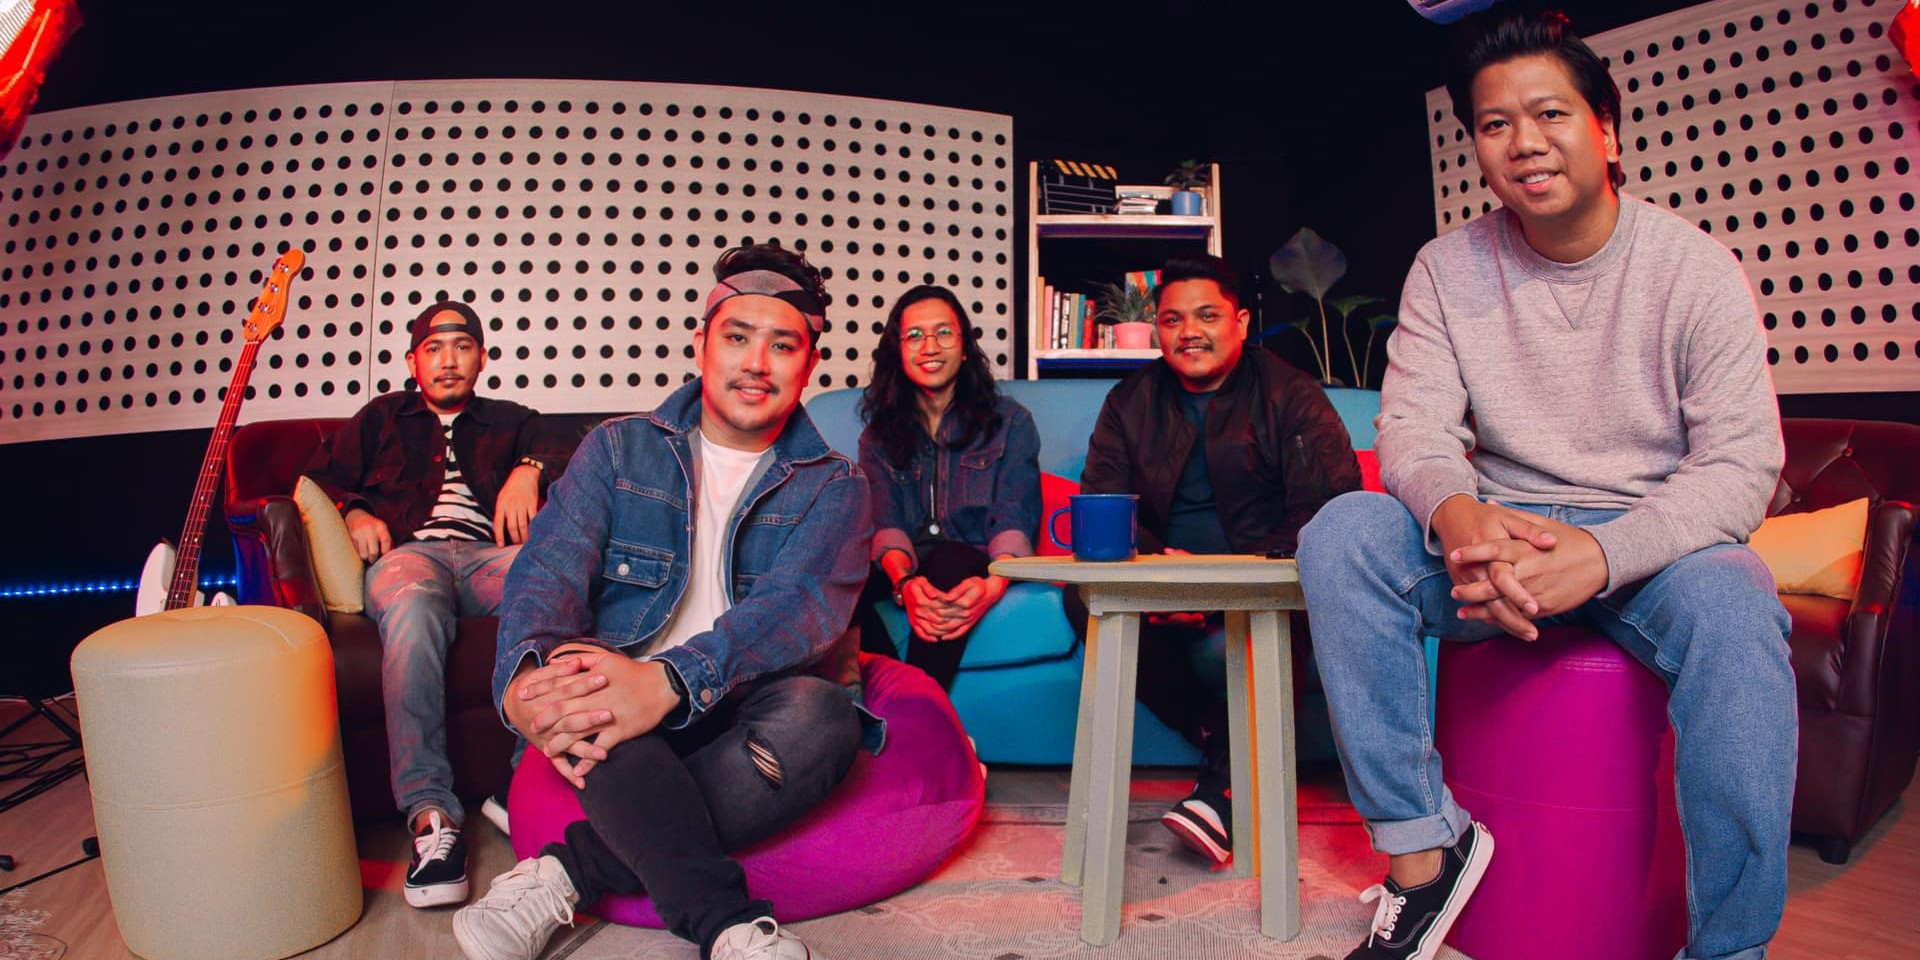 December Avenue talk diving into the 'Unfamiliar' for their new single – listen